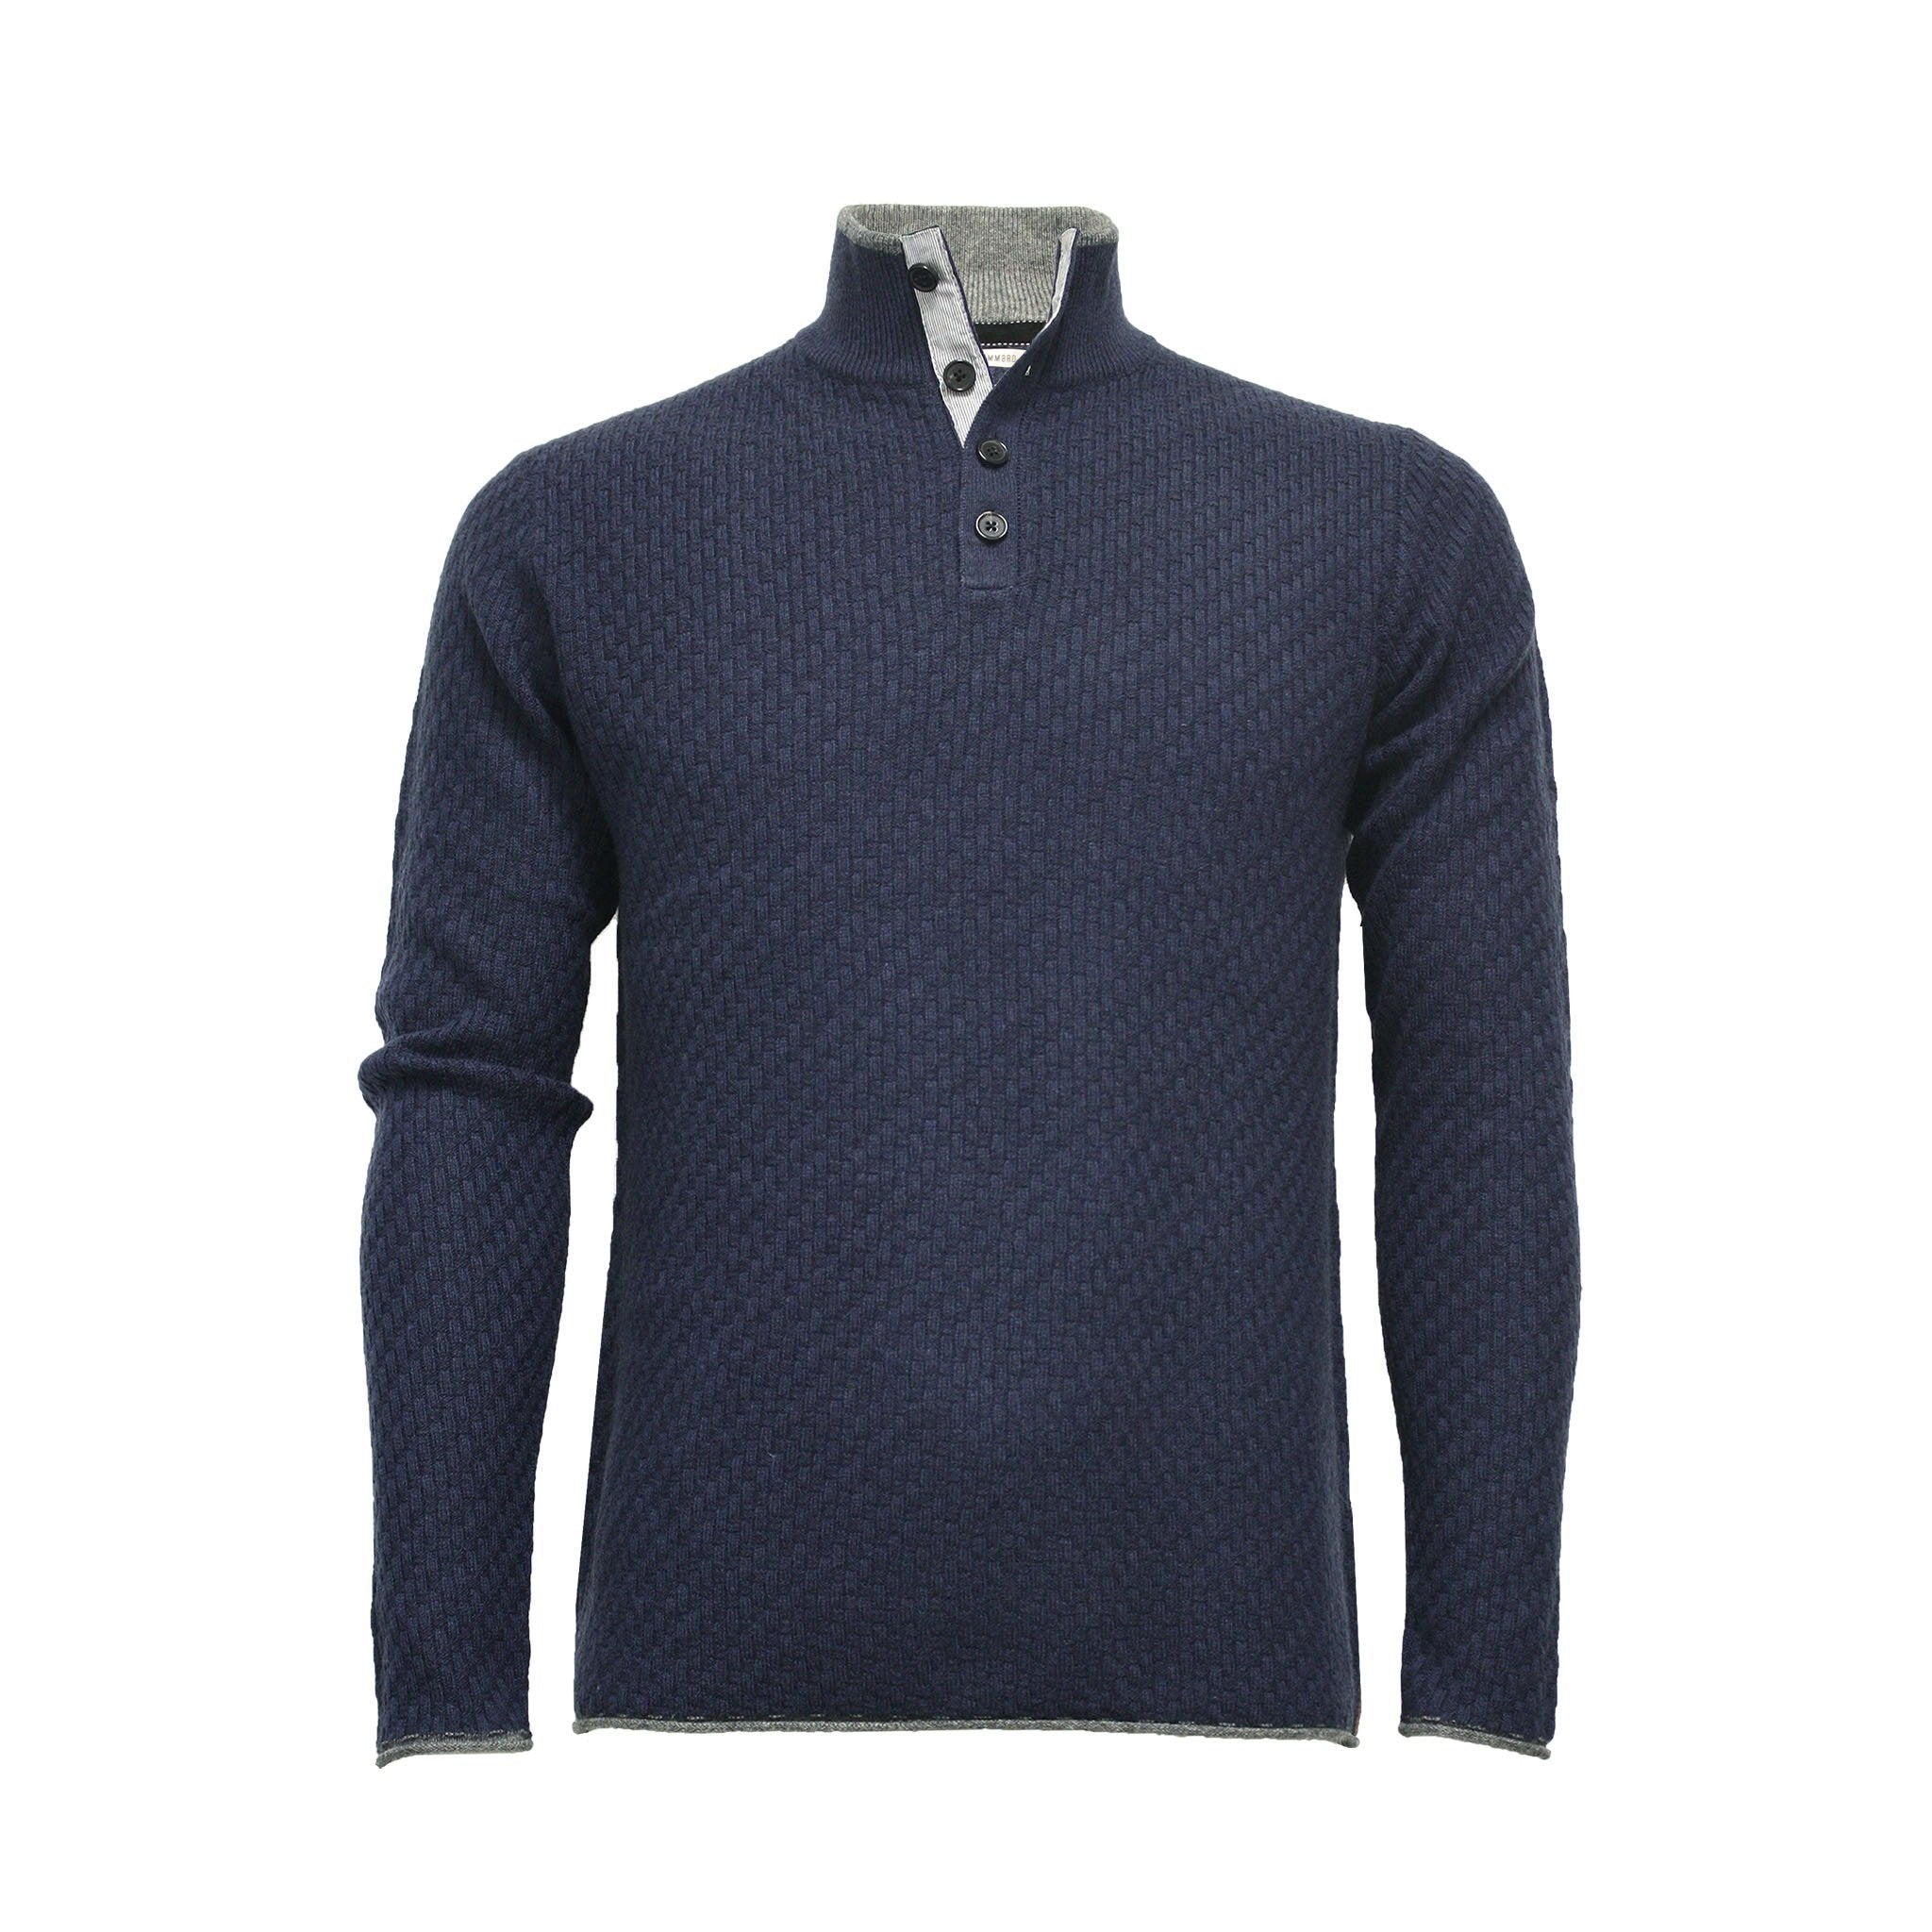 Men´s Cashmere Sweater Button Neck Andromeda in Carbon Stitch - Hommard